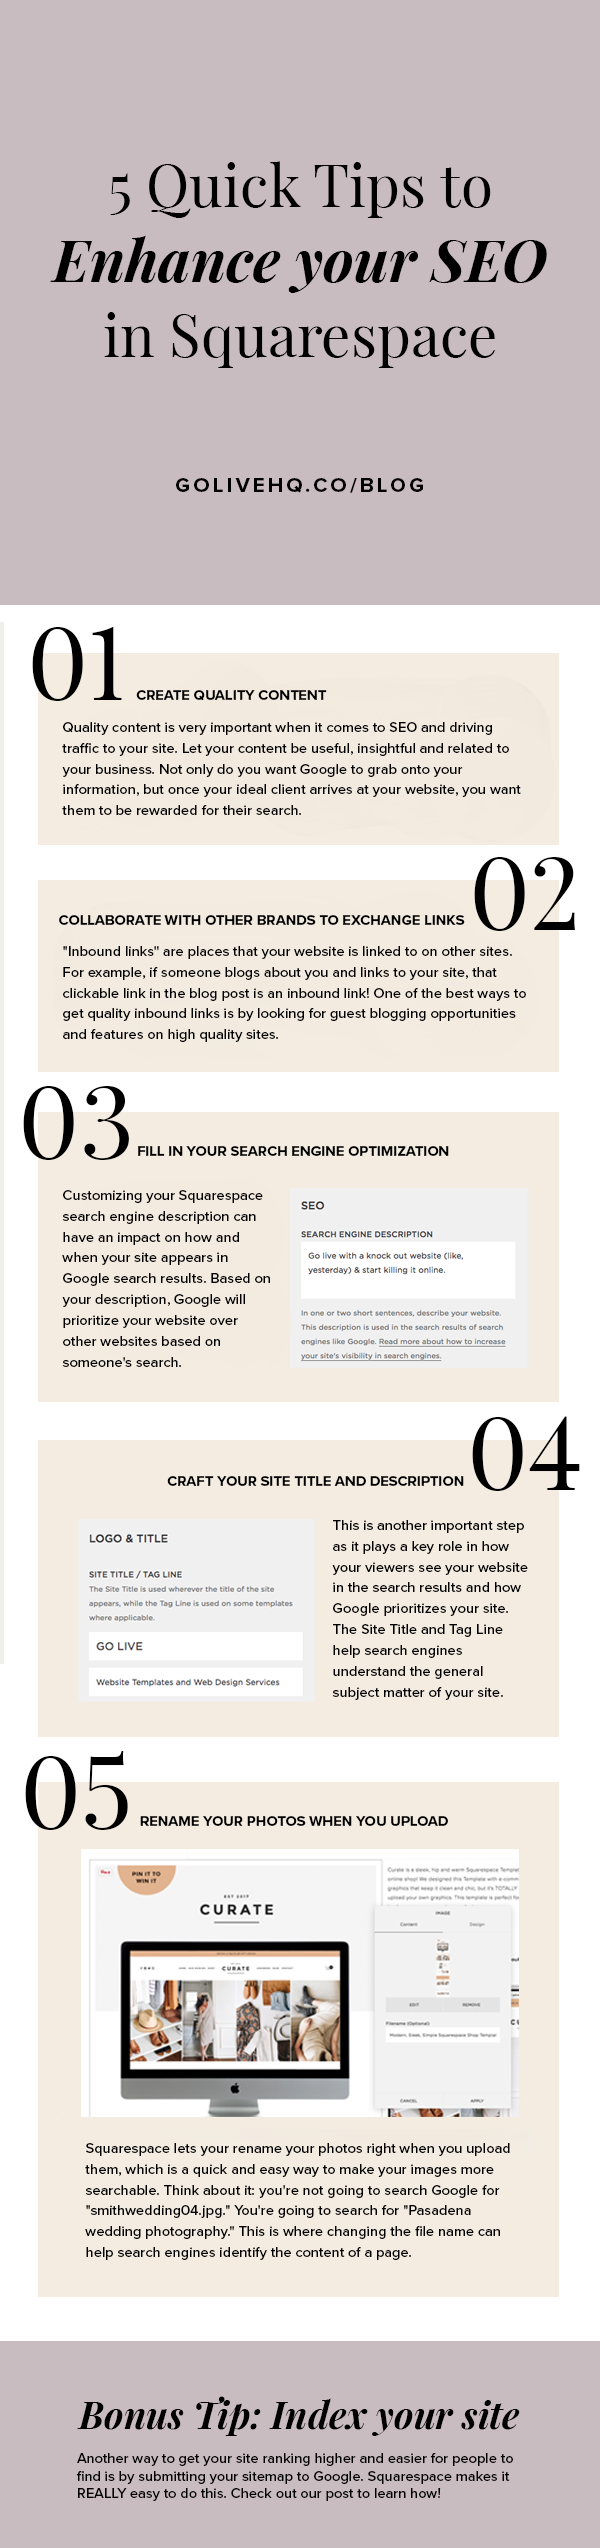 5+Quick+Tips+To+Enhance+Your+SEO+in+Squarespace+_+By+Go+Live+HQ.png